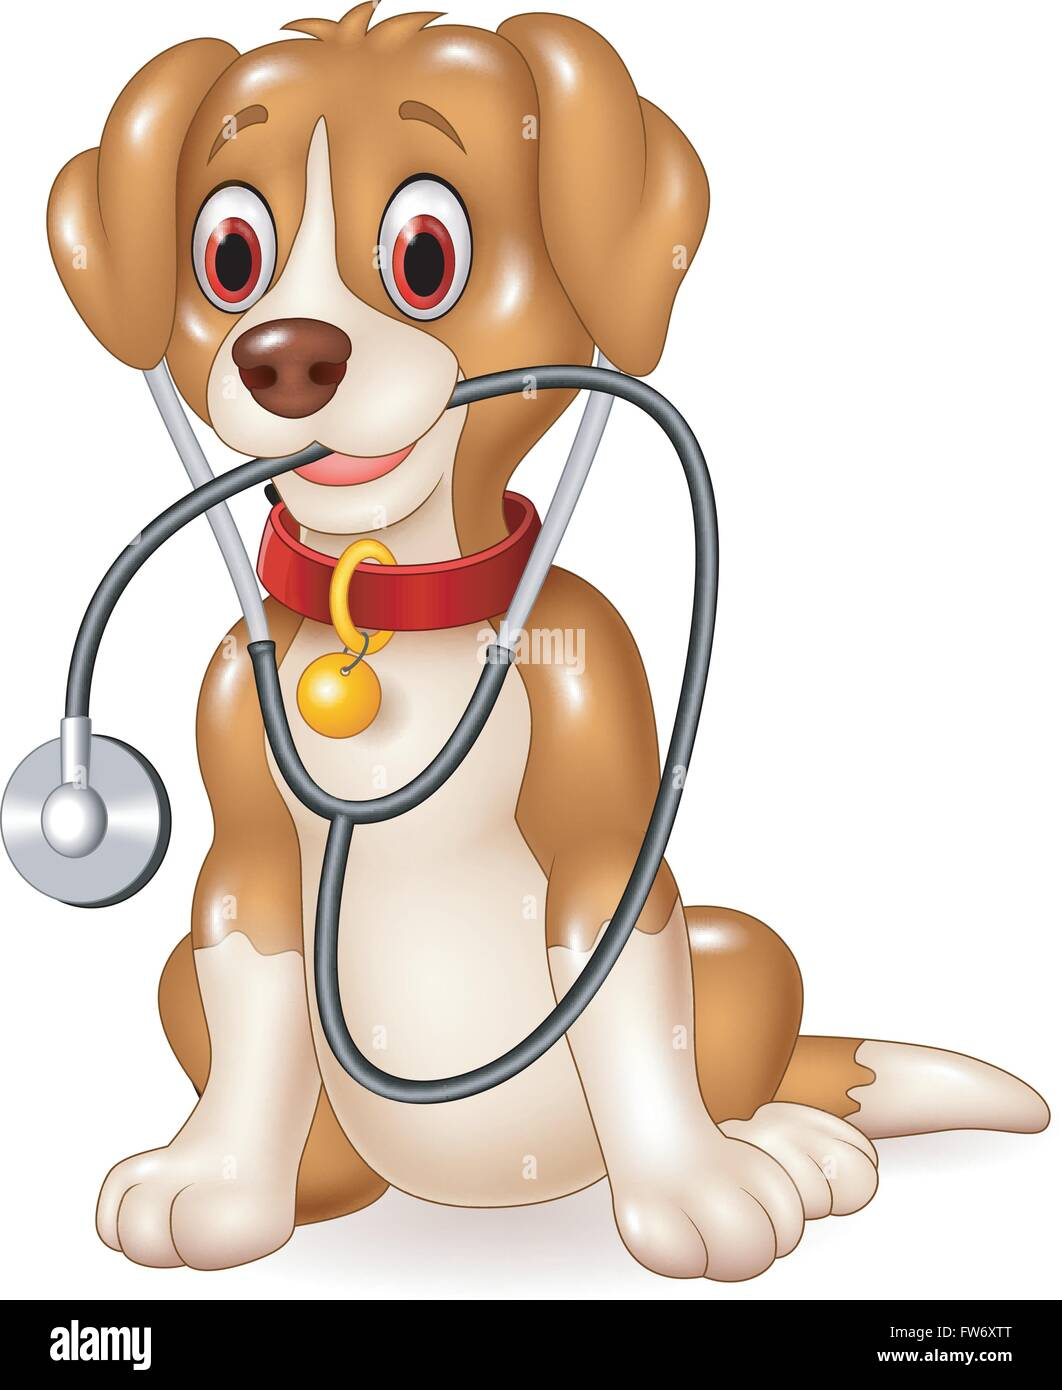 Cartoon funny dog sitting with stethoscope - Stock Vector